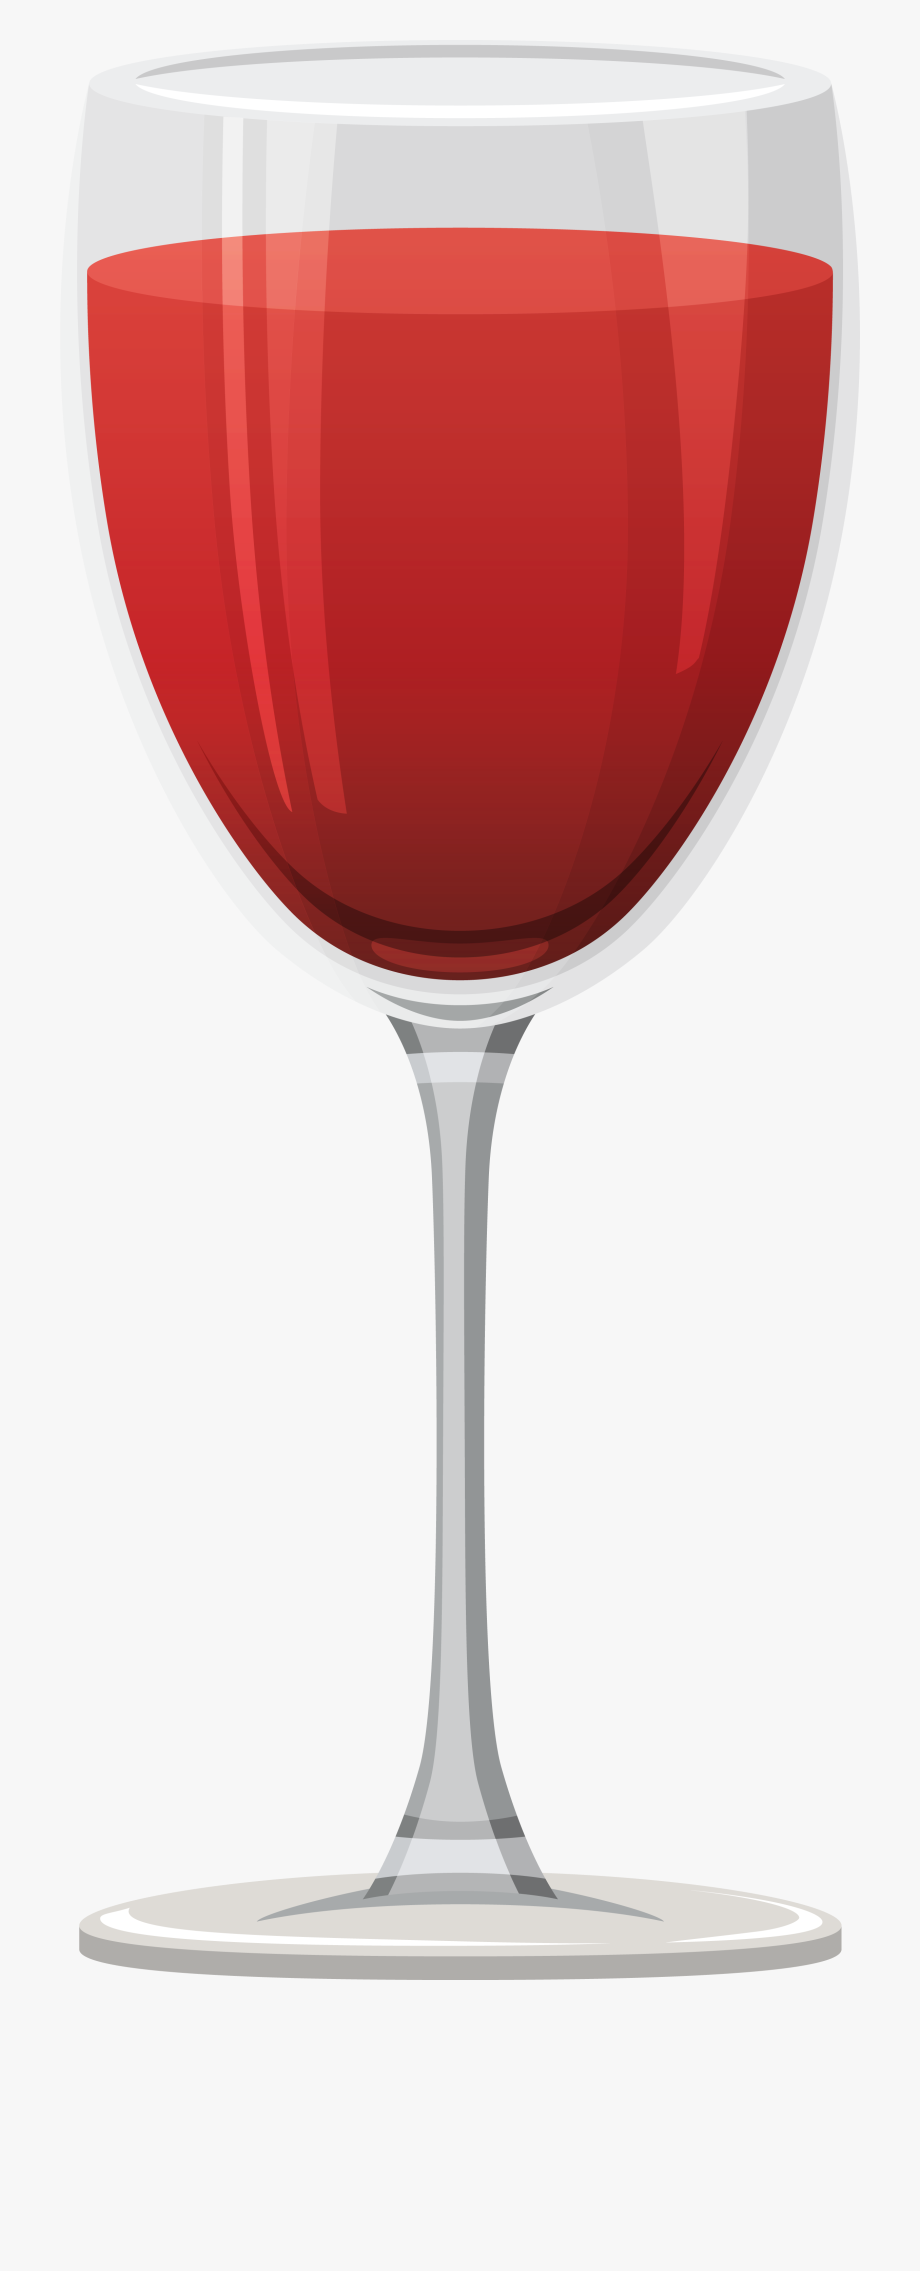 Wine Glasses Clipart Transparent Background.